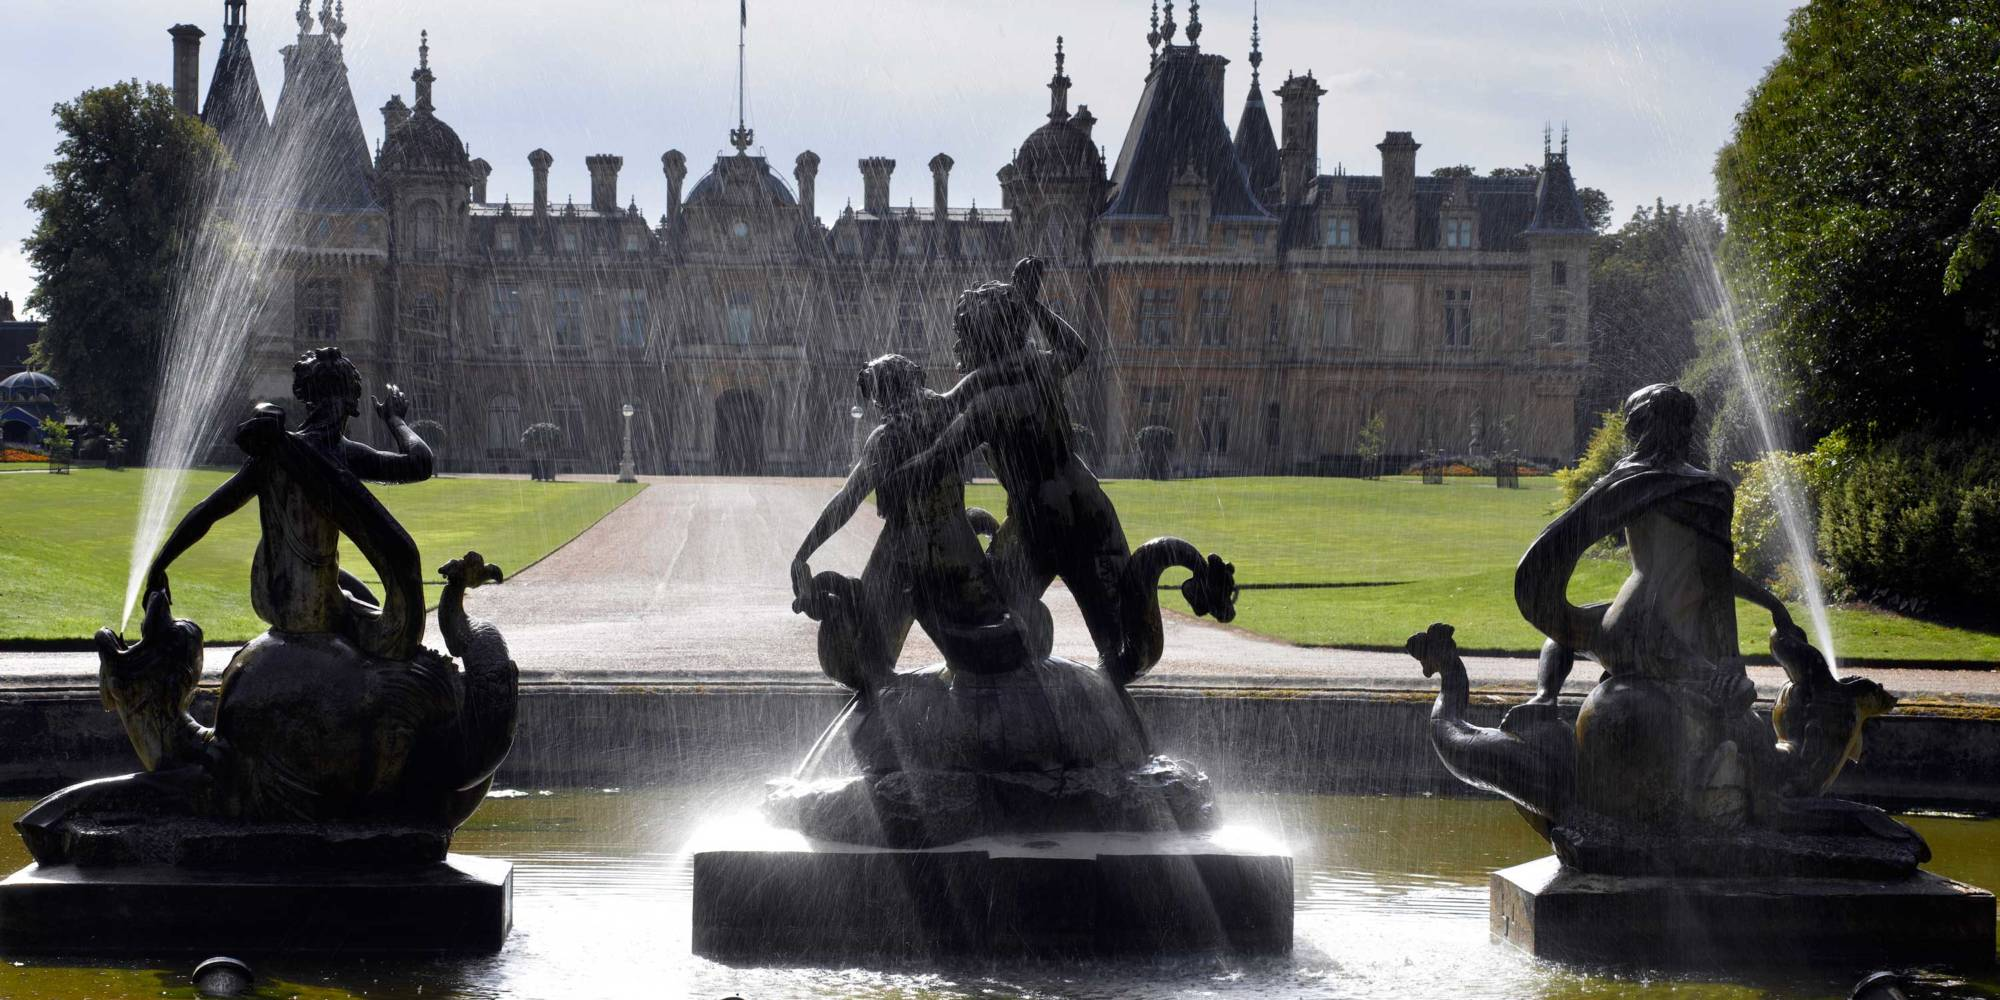 North Fountain, Waddesdon Manor